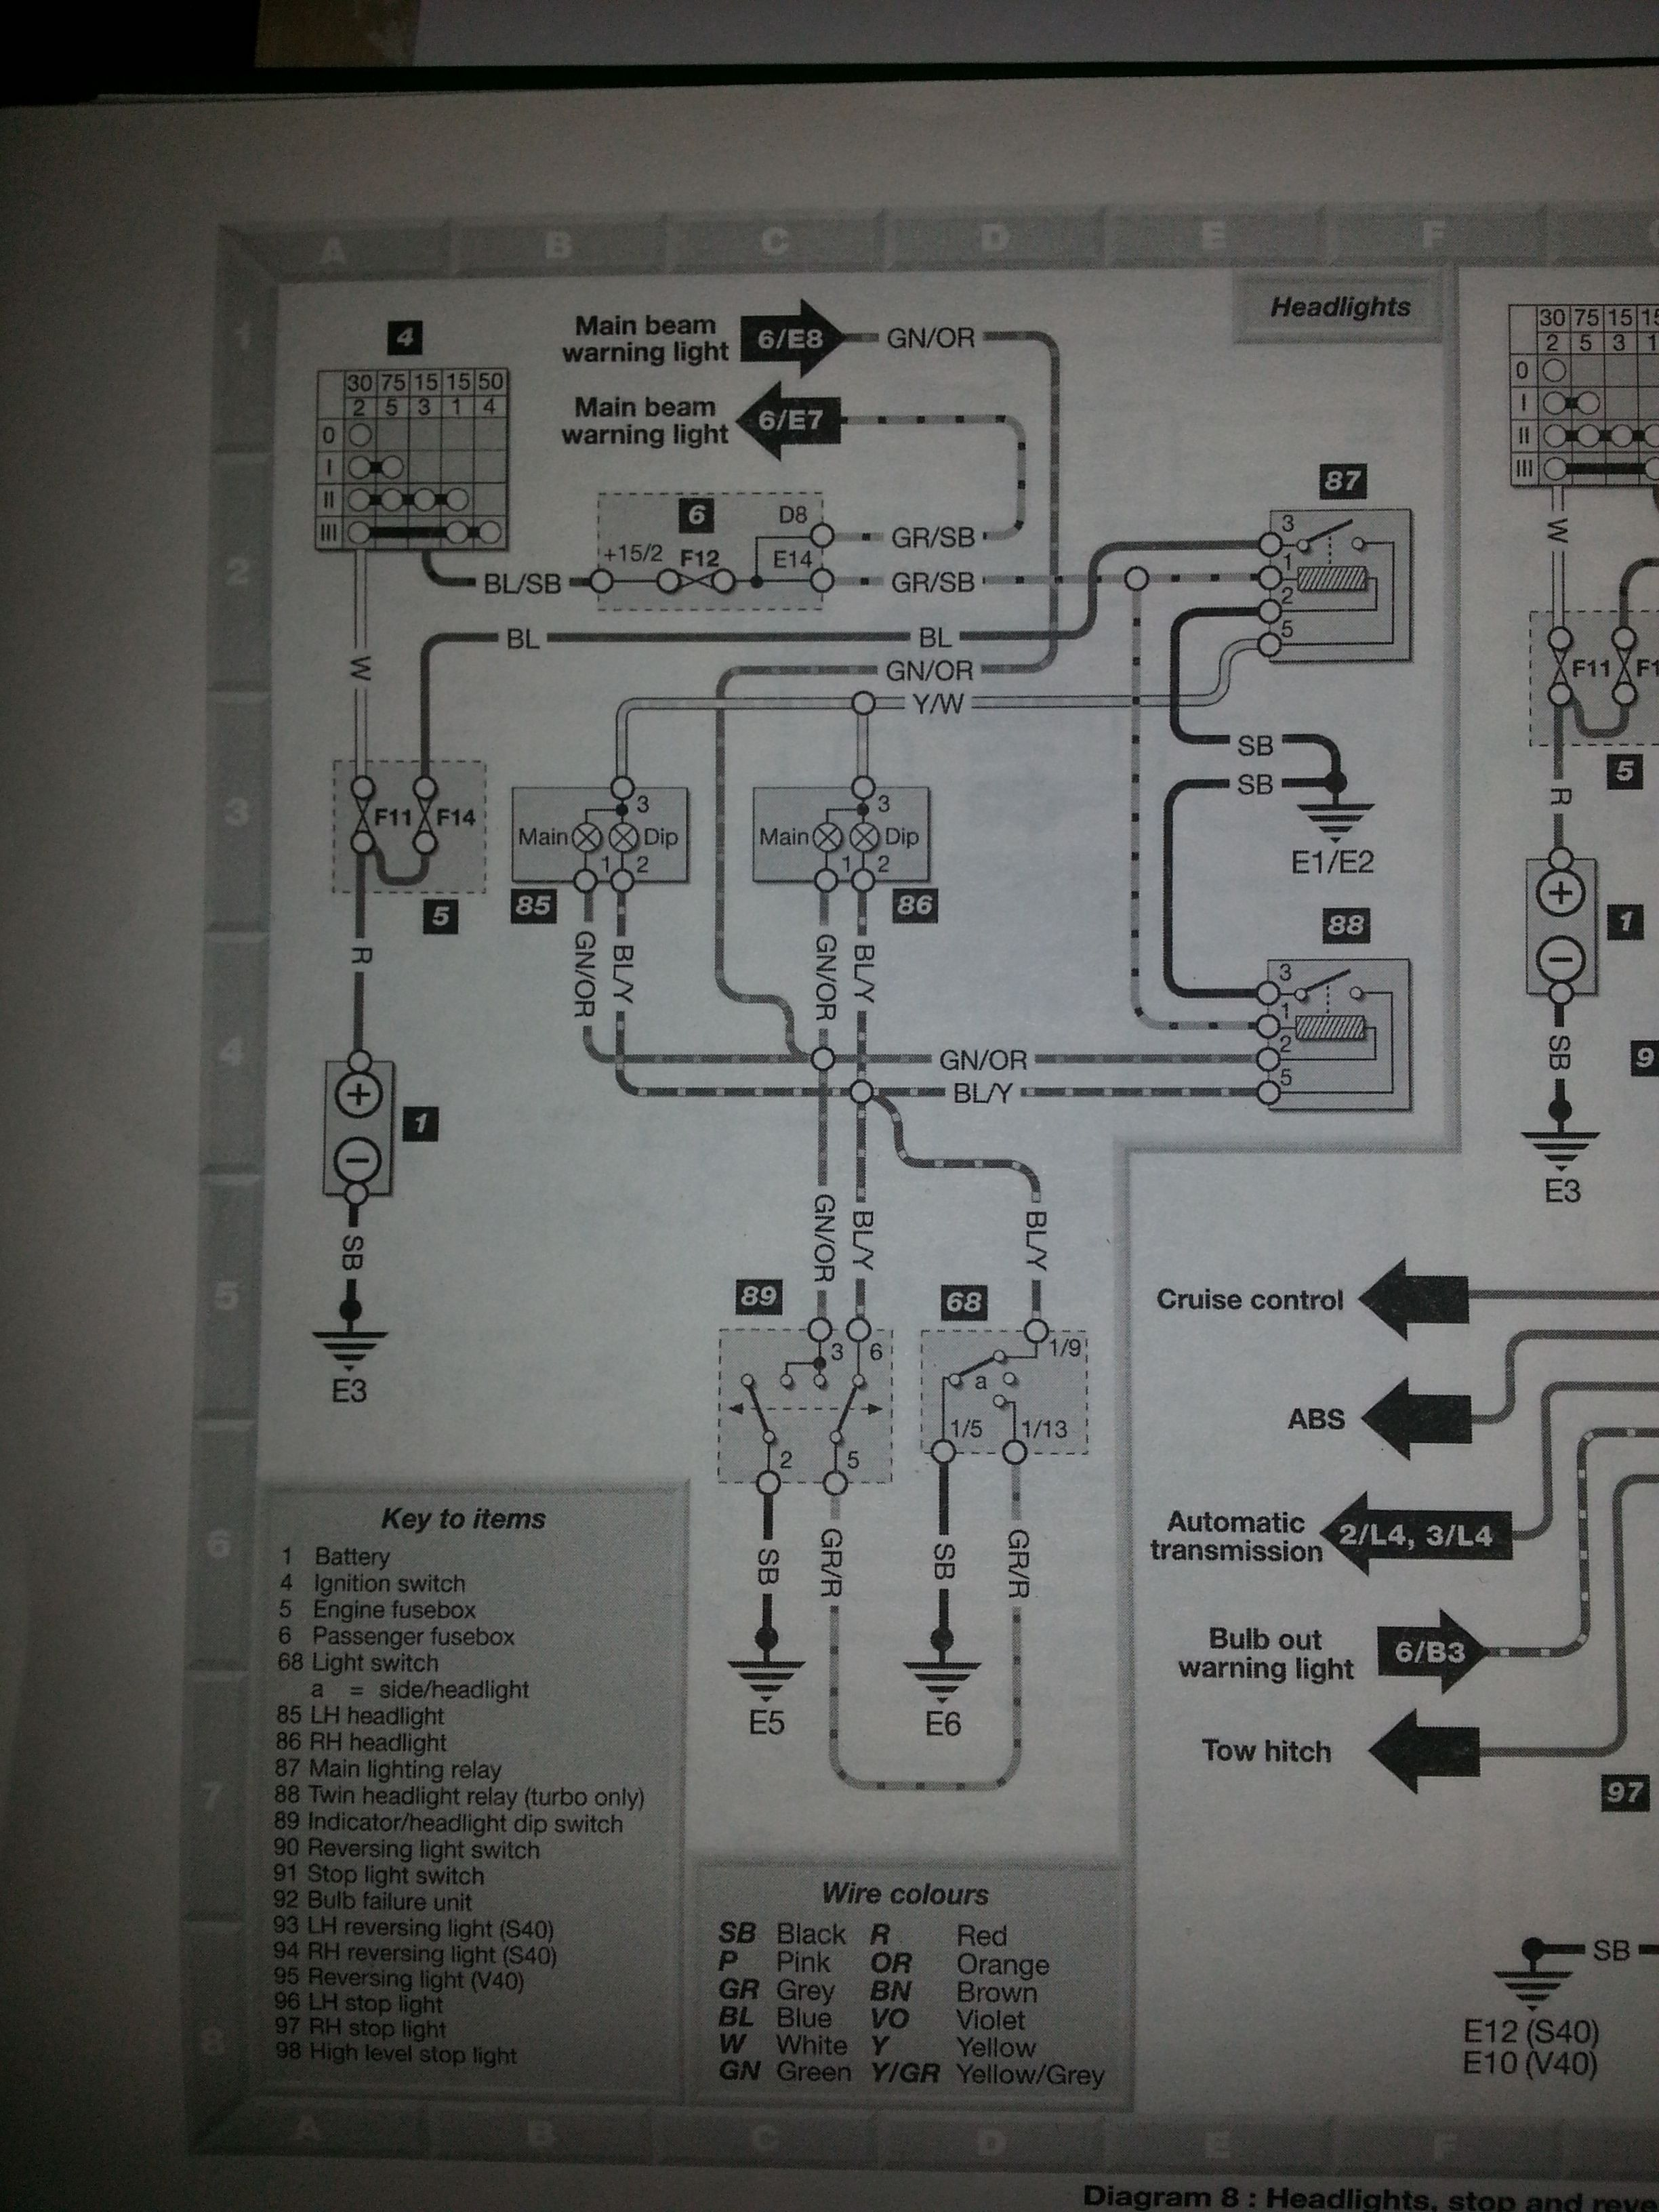 Posted In Automotive Wiring Cadillac Tagged Cadillac Circuit Diagrams